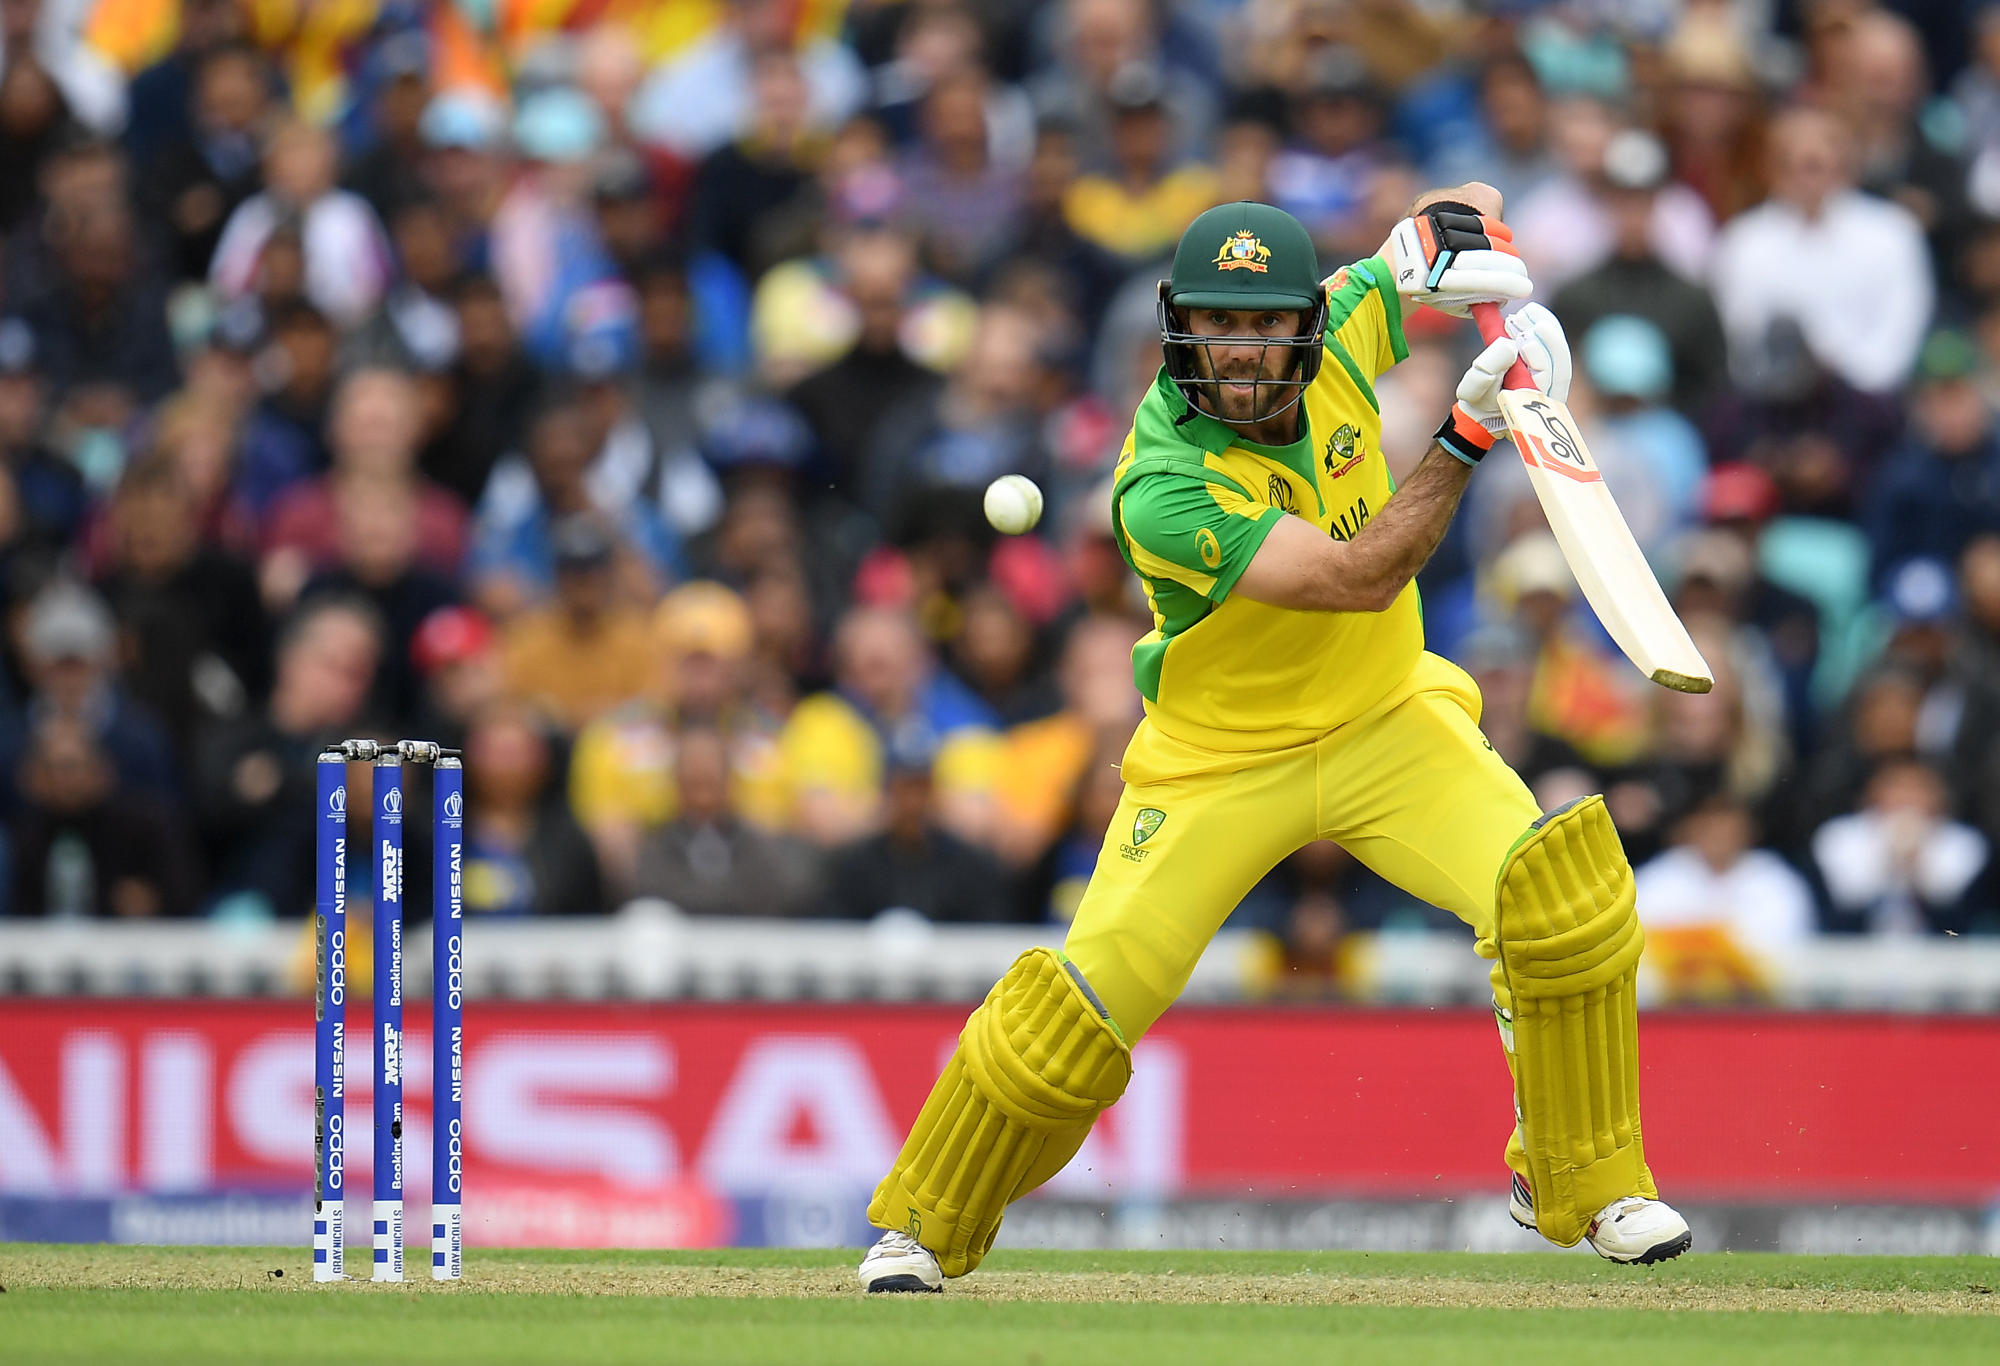 Glenn Maxwell of Australia plays a shot